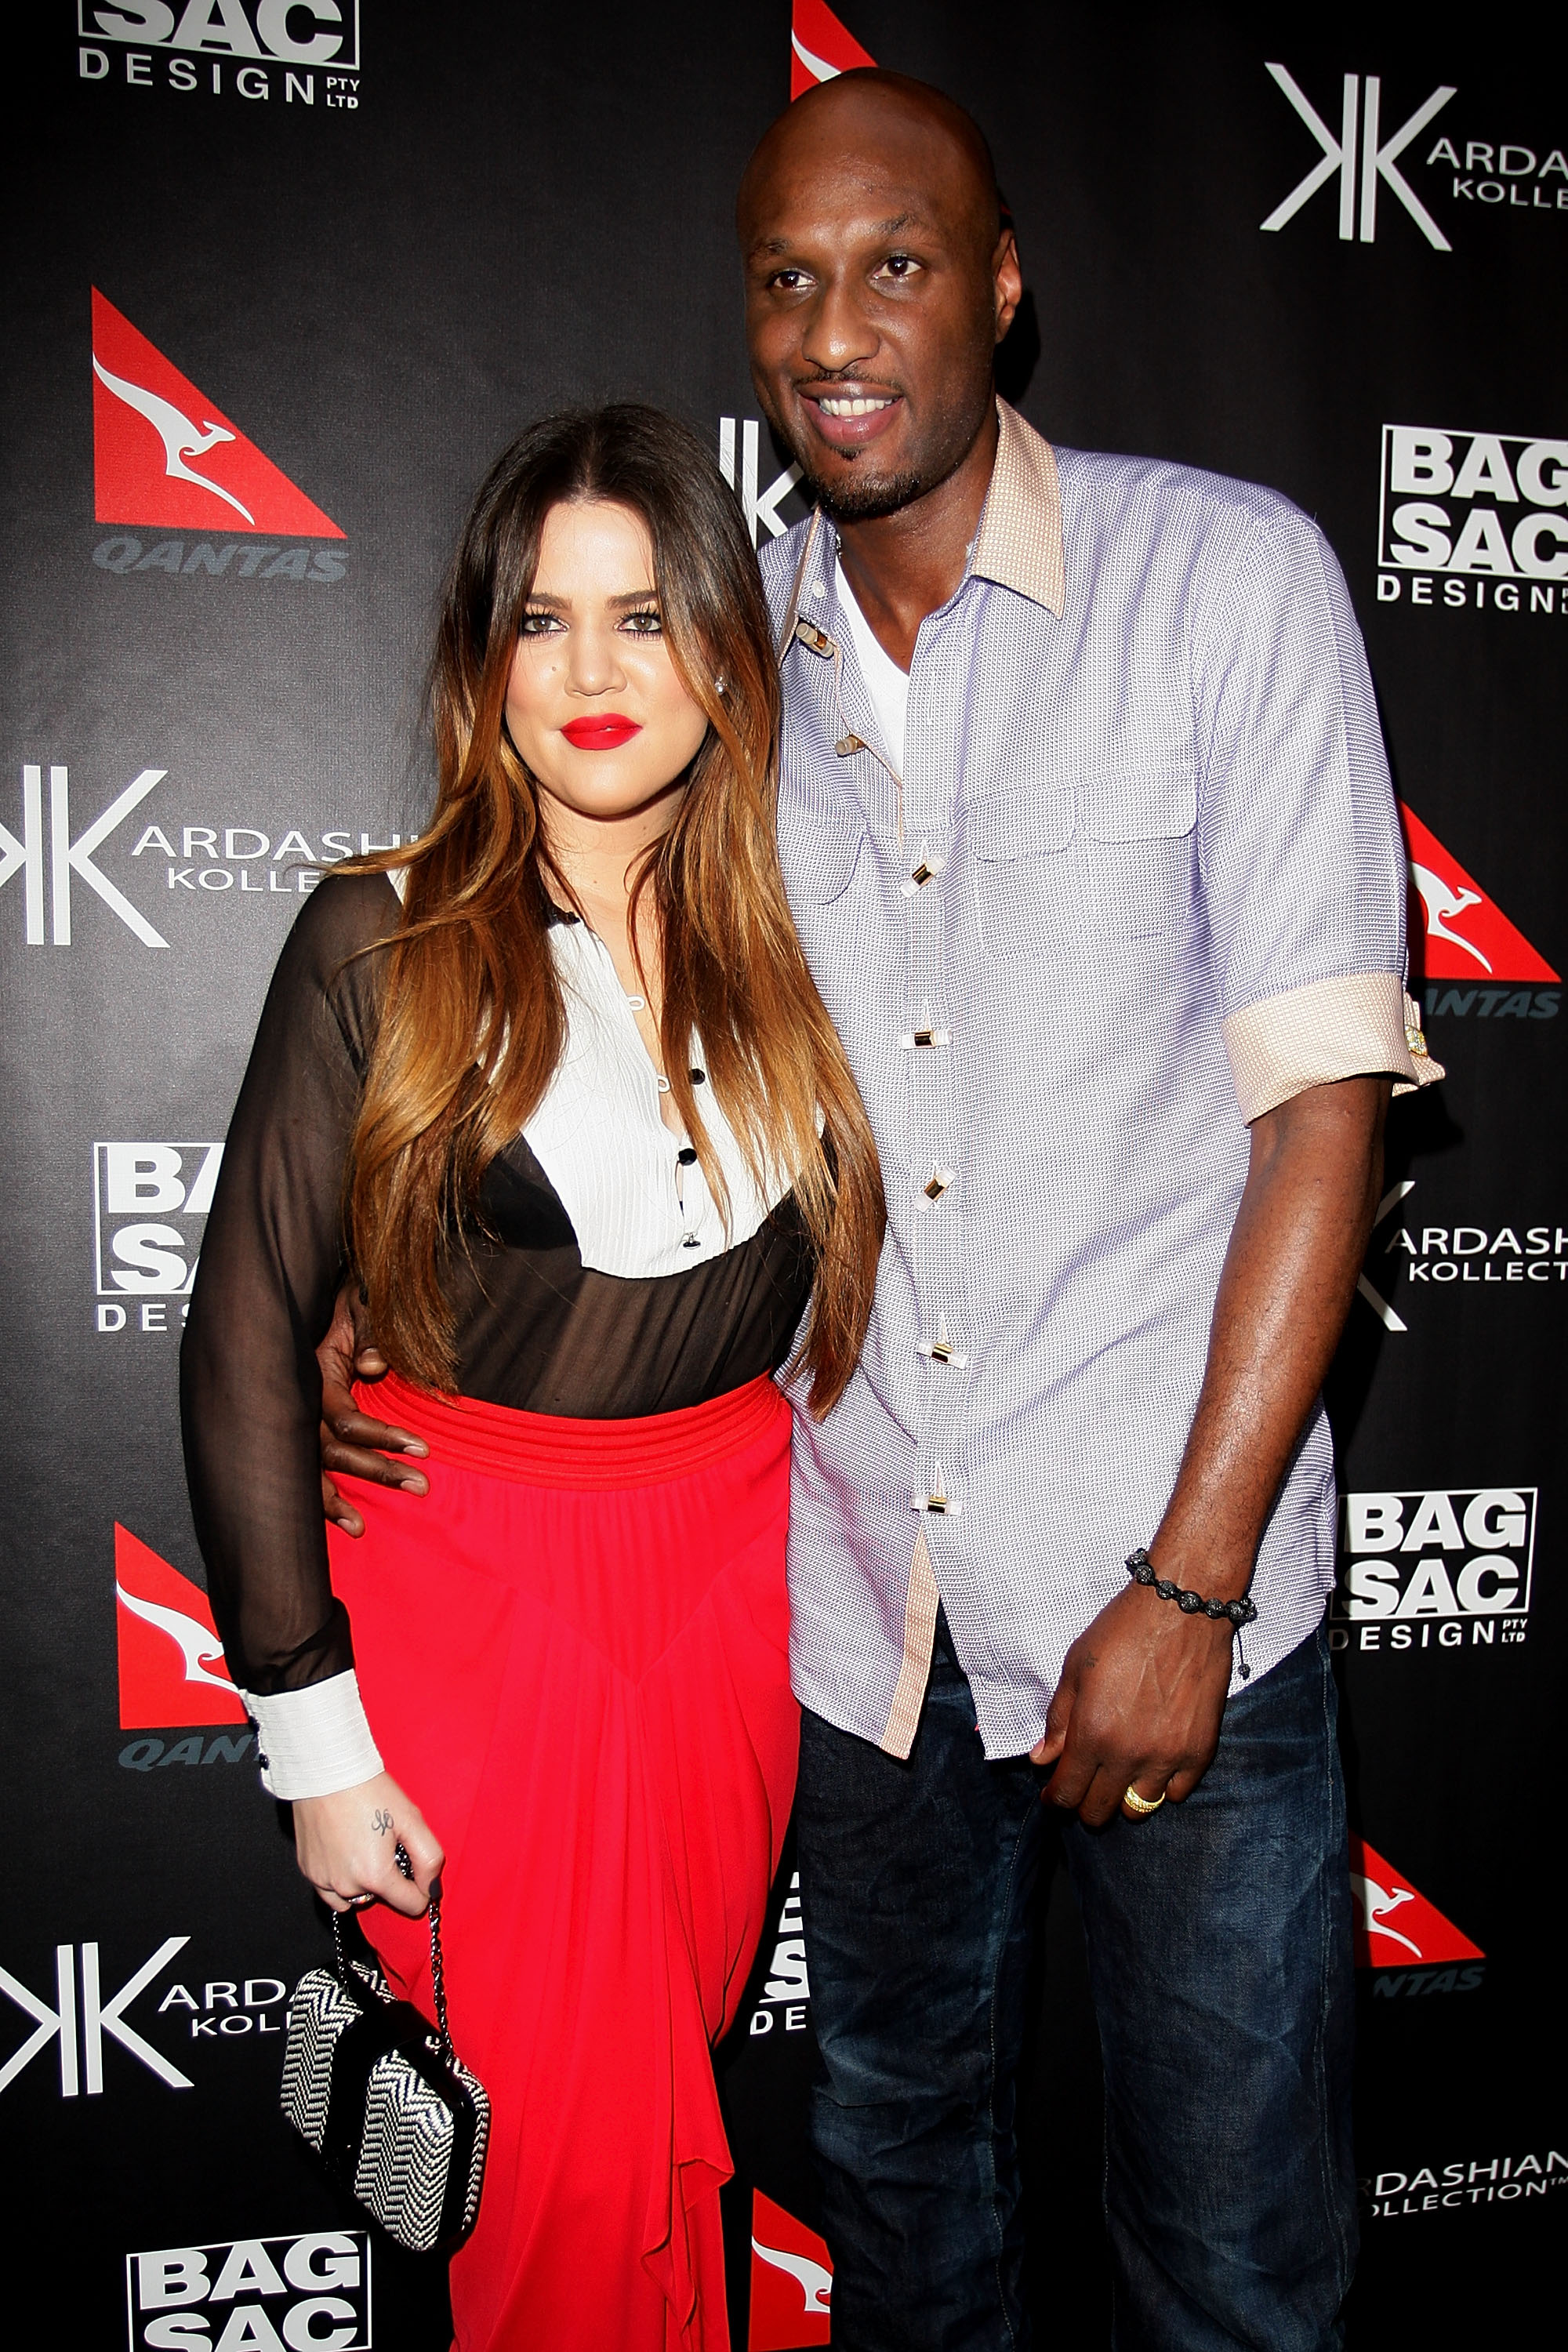 Kardashian Kollection Handbag Australian Launch Party